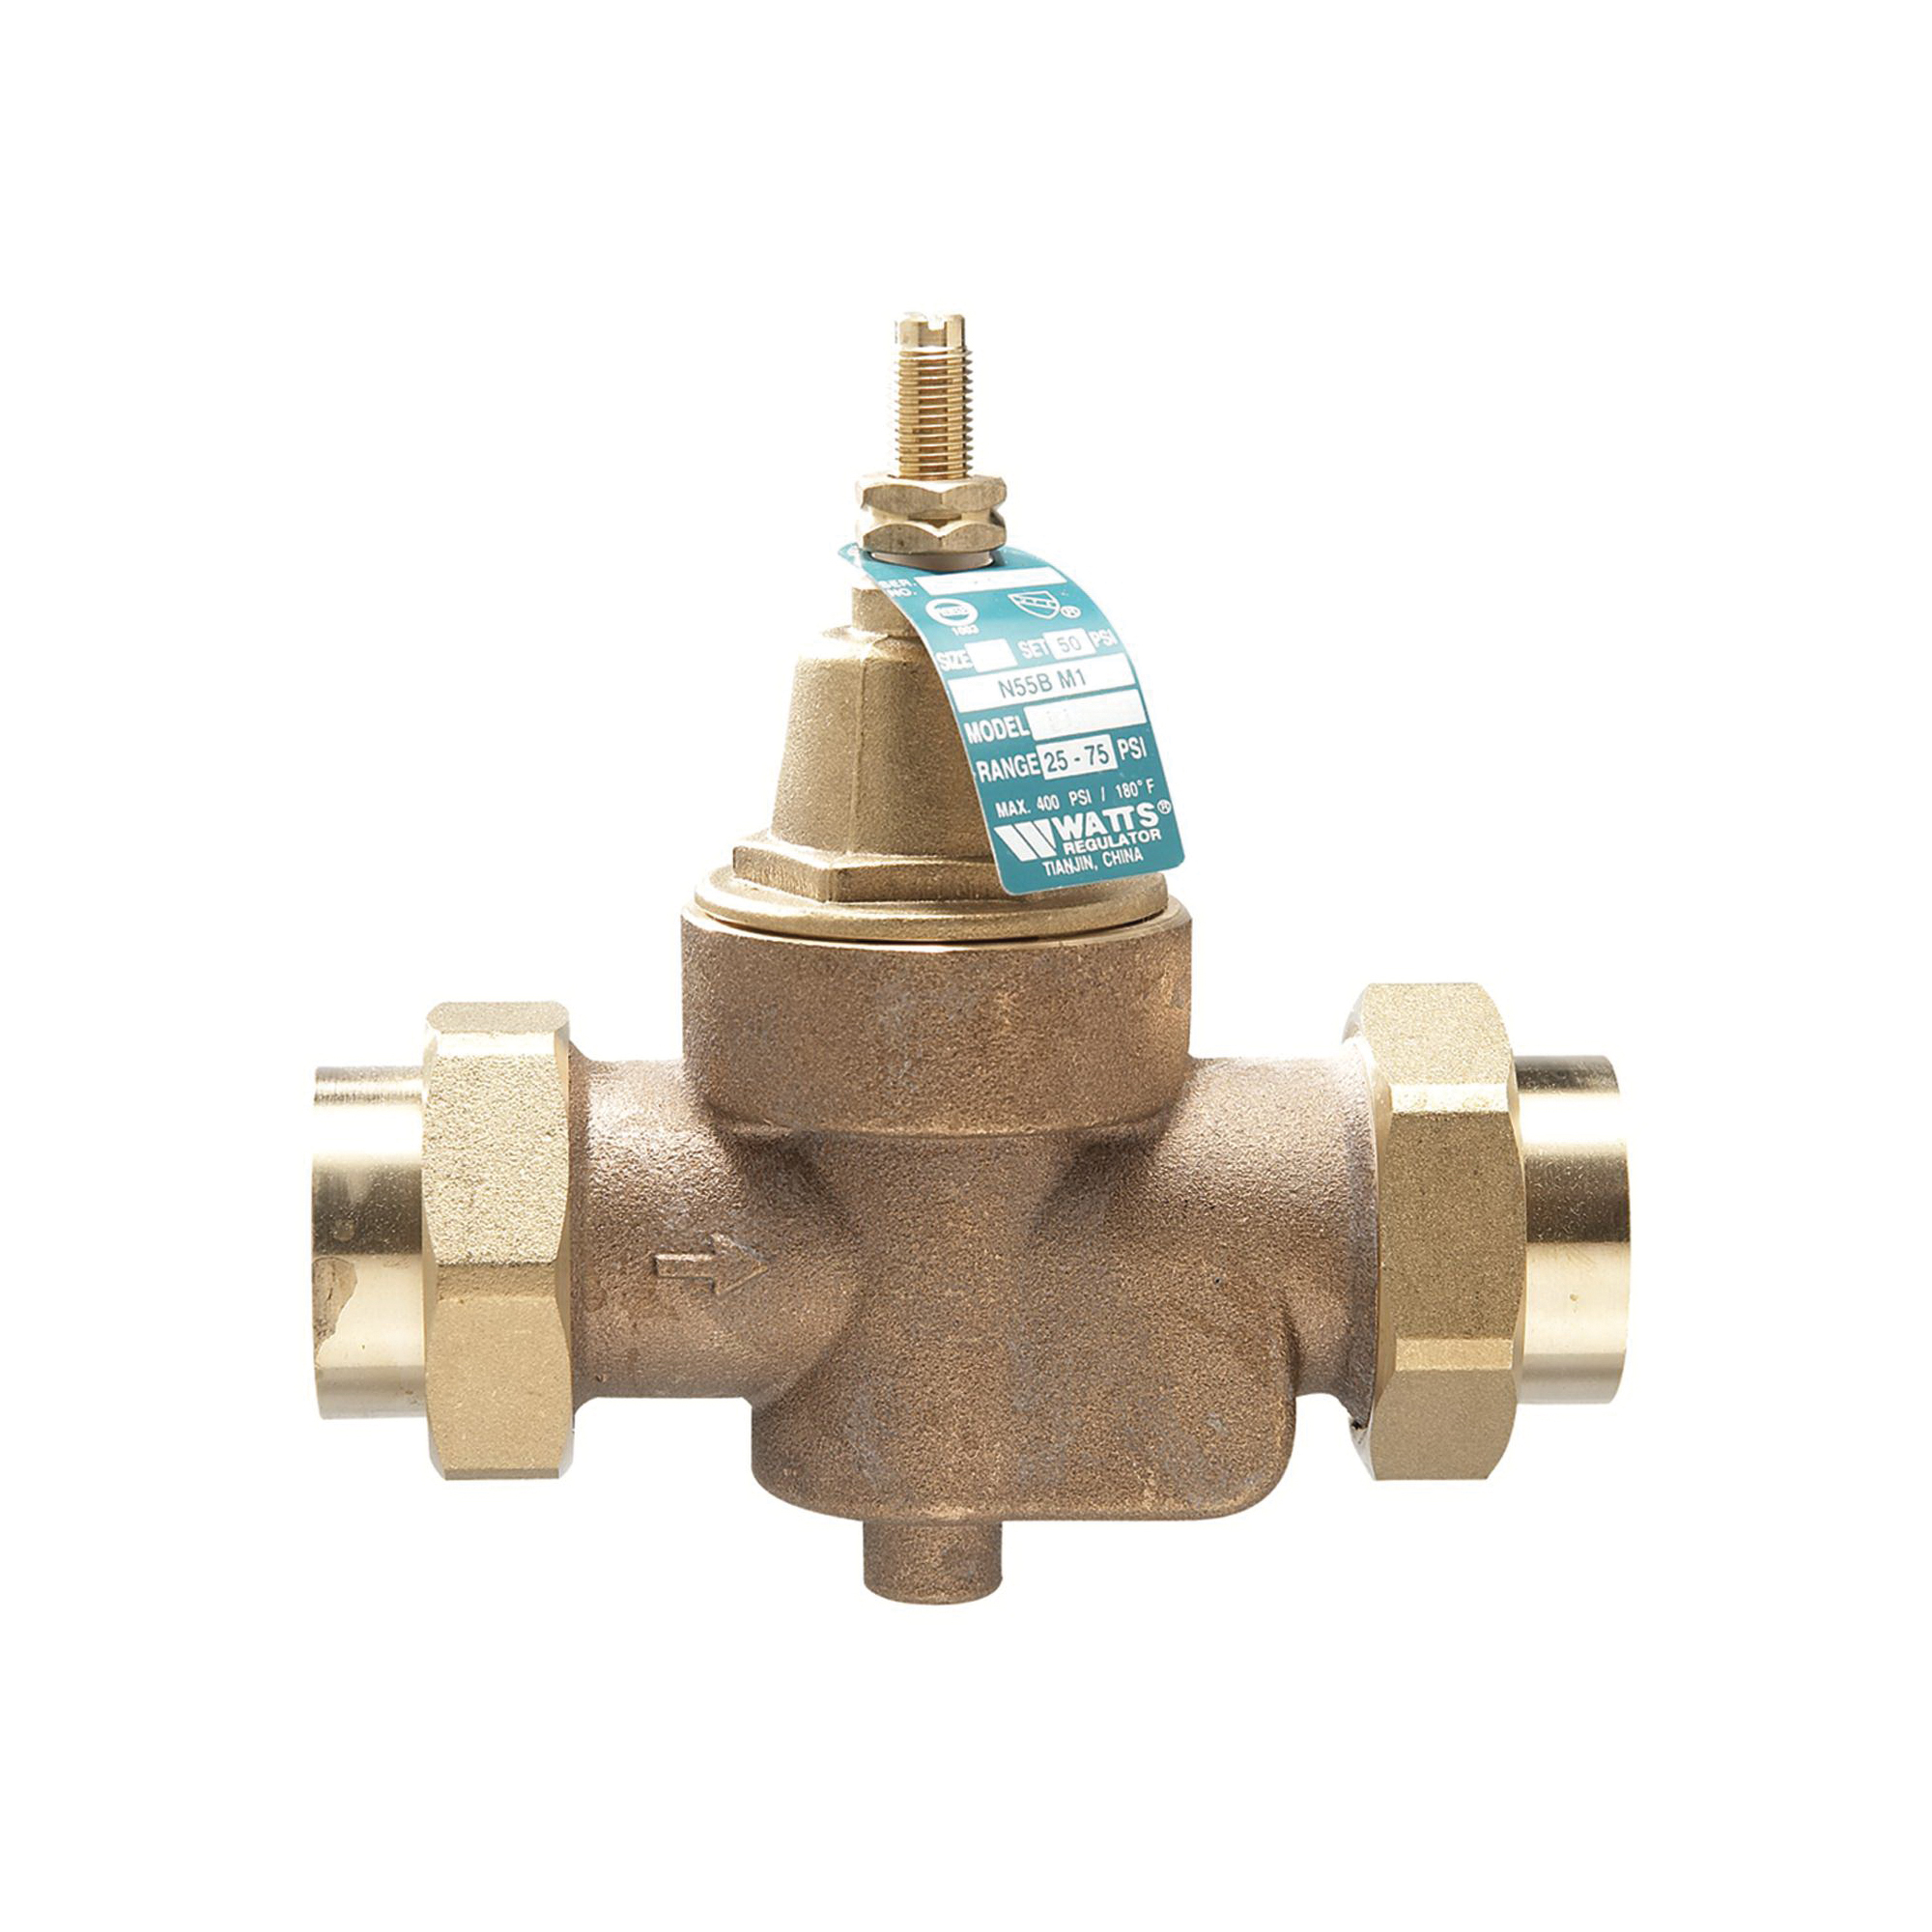 WATTS® LFN55B-M1 Lead Free Pressure Reducing Valve, 3/4 in, FNPT, 400 psi Working, Brass